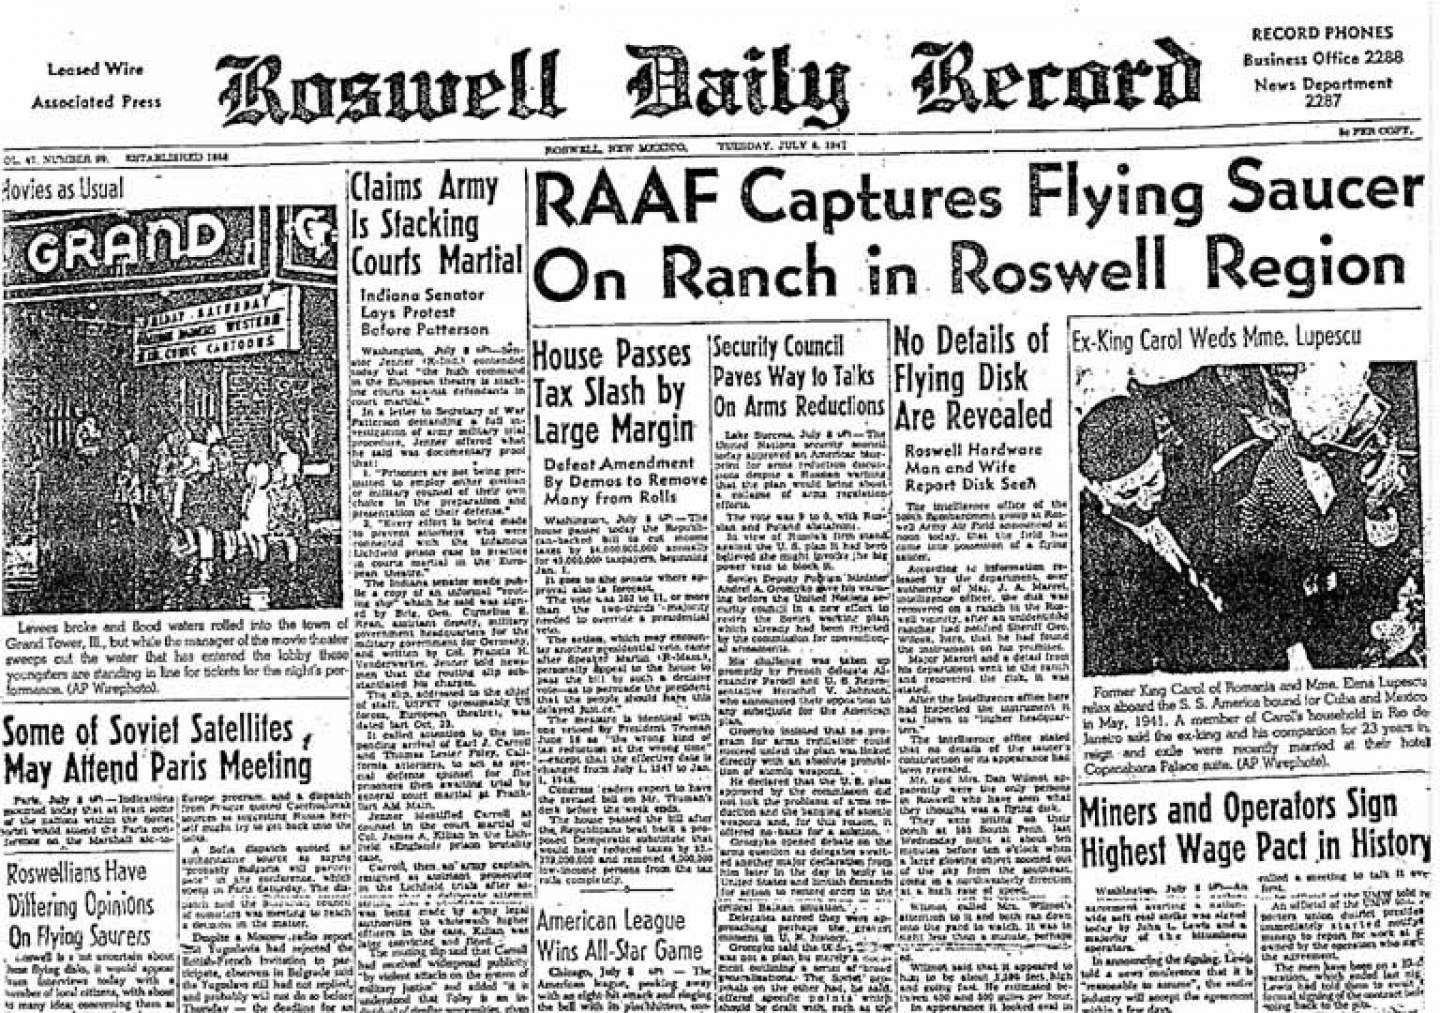 In 1947 A High Altitude Balloon Crash Landed in Roswell